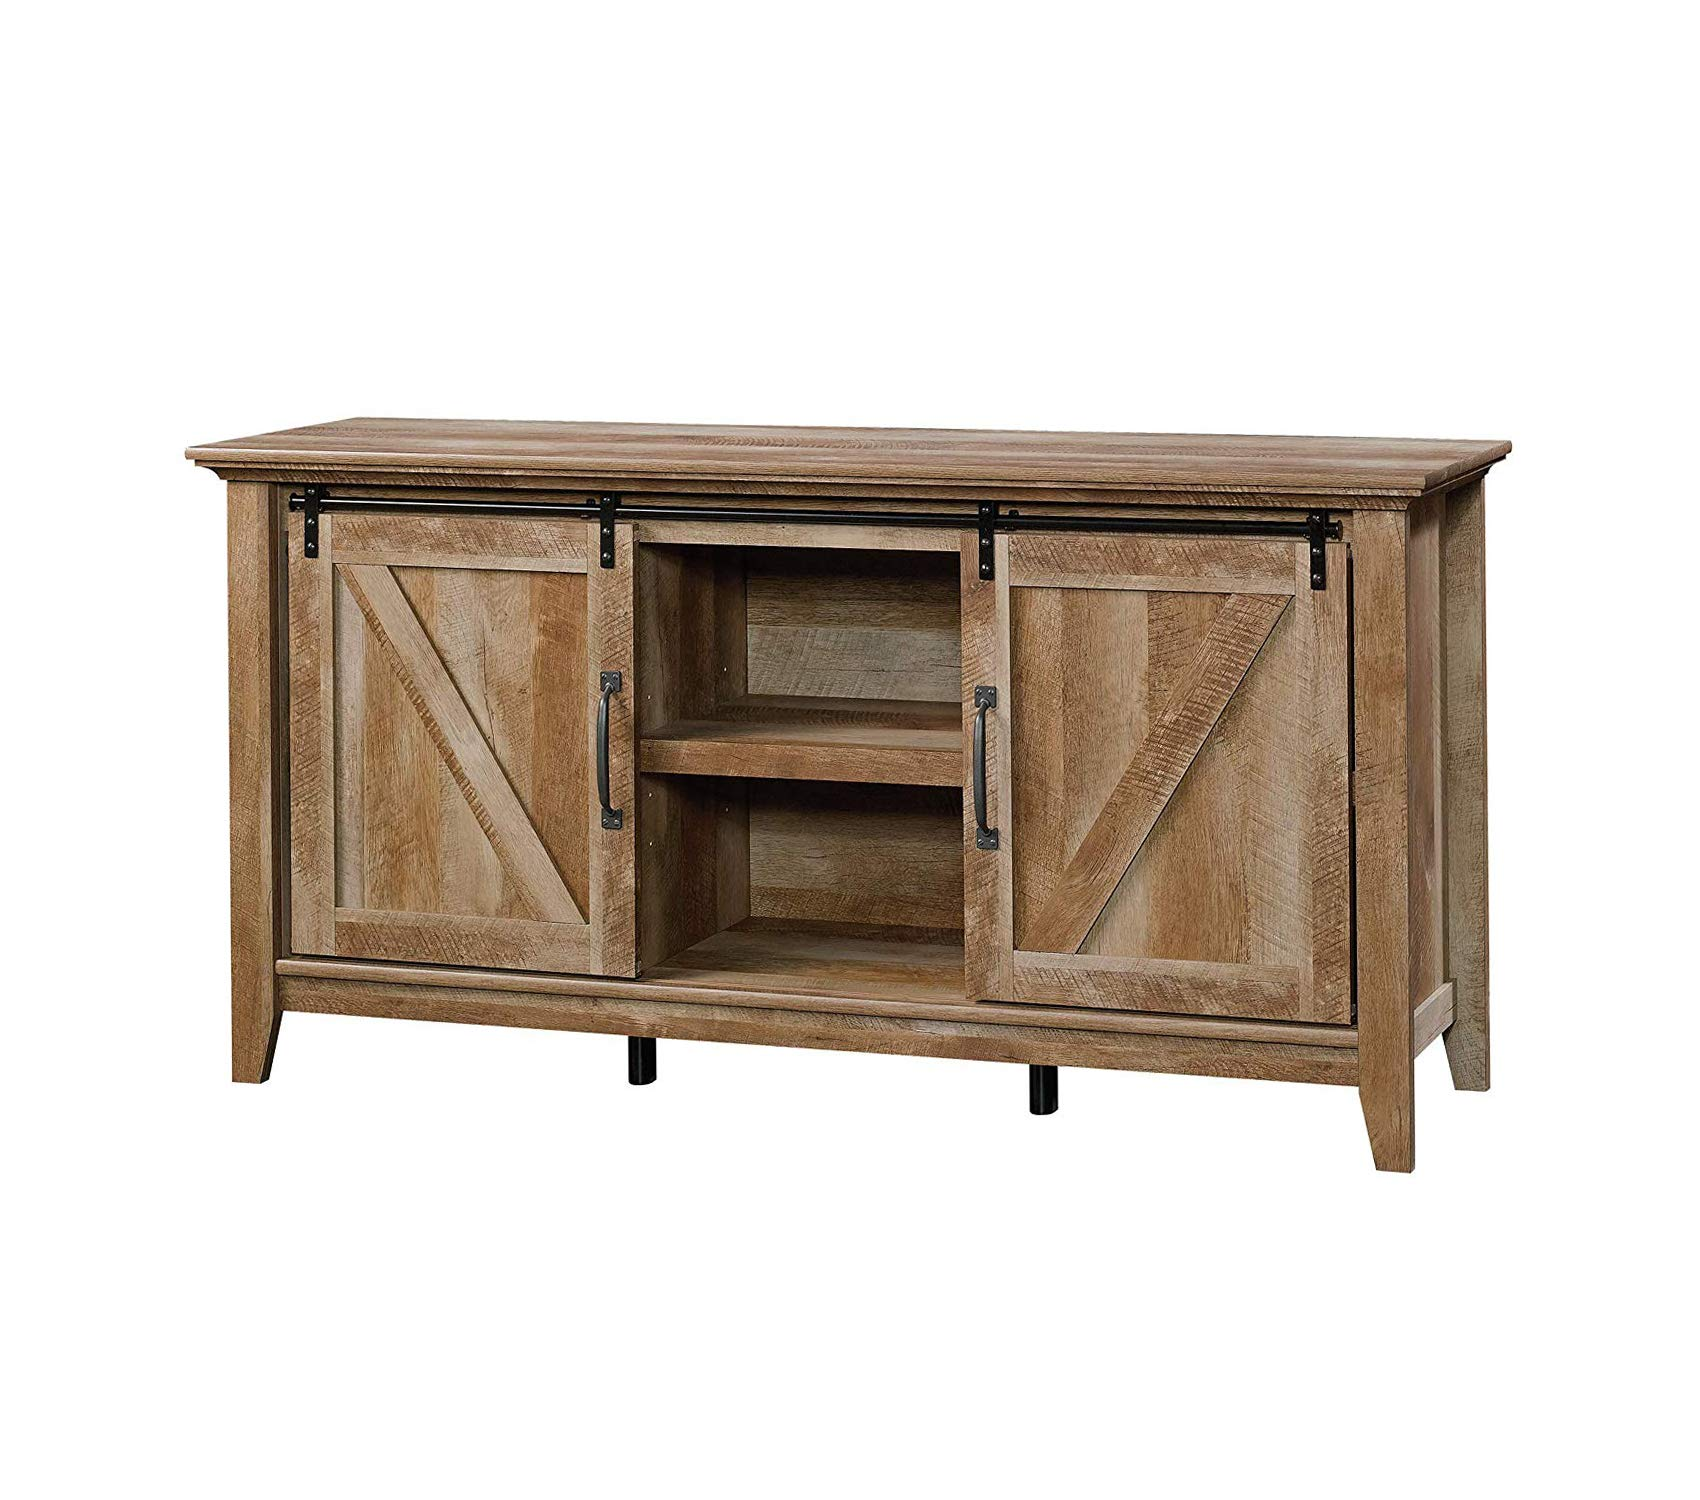 Wood & Style Furniture Dakota Pass Credenza for TV's up to 70'' Craftsman Oak Finish Premium Office Home Durable Strong by Wood & Style